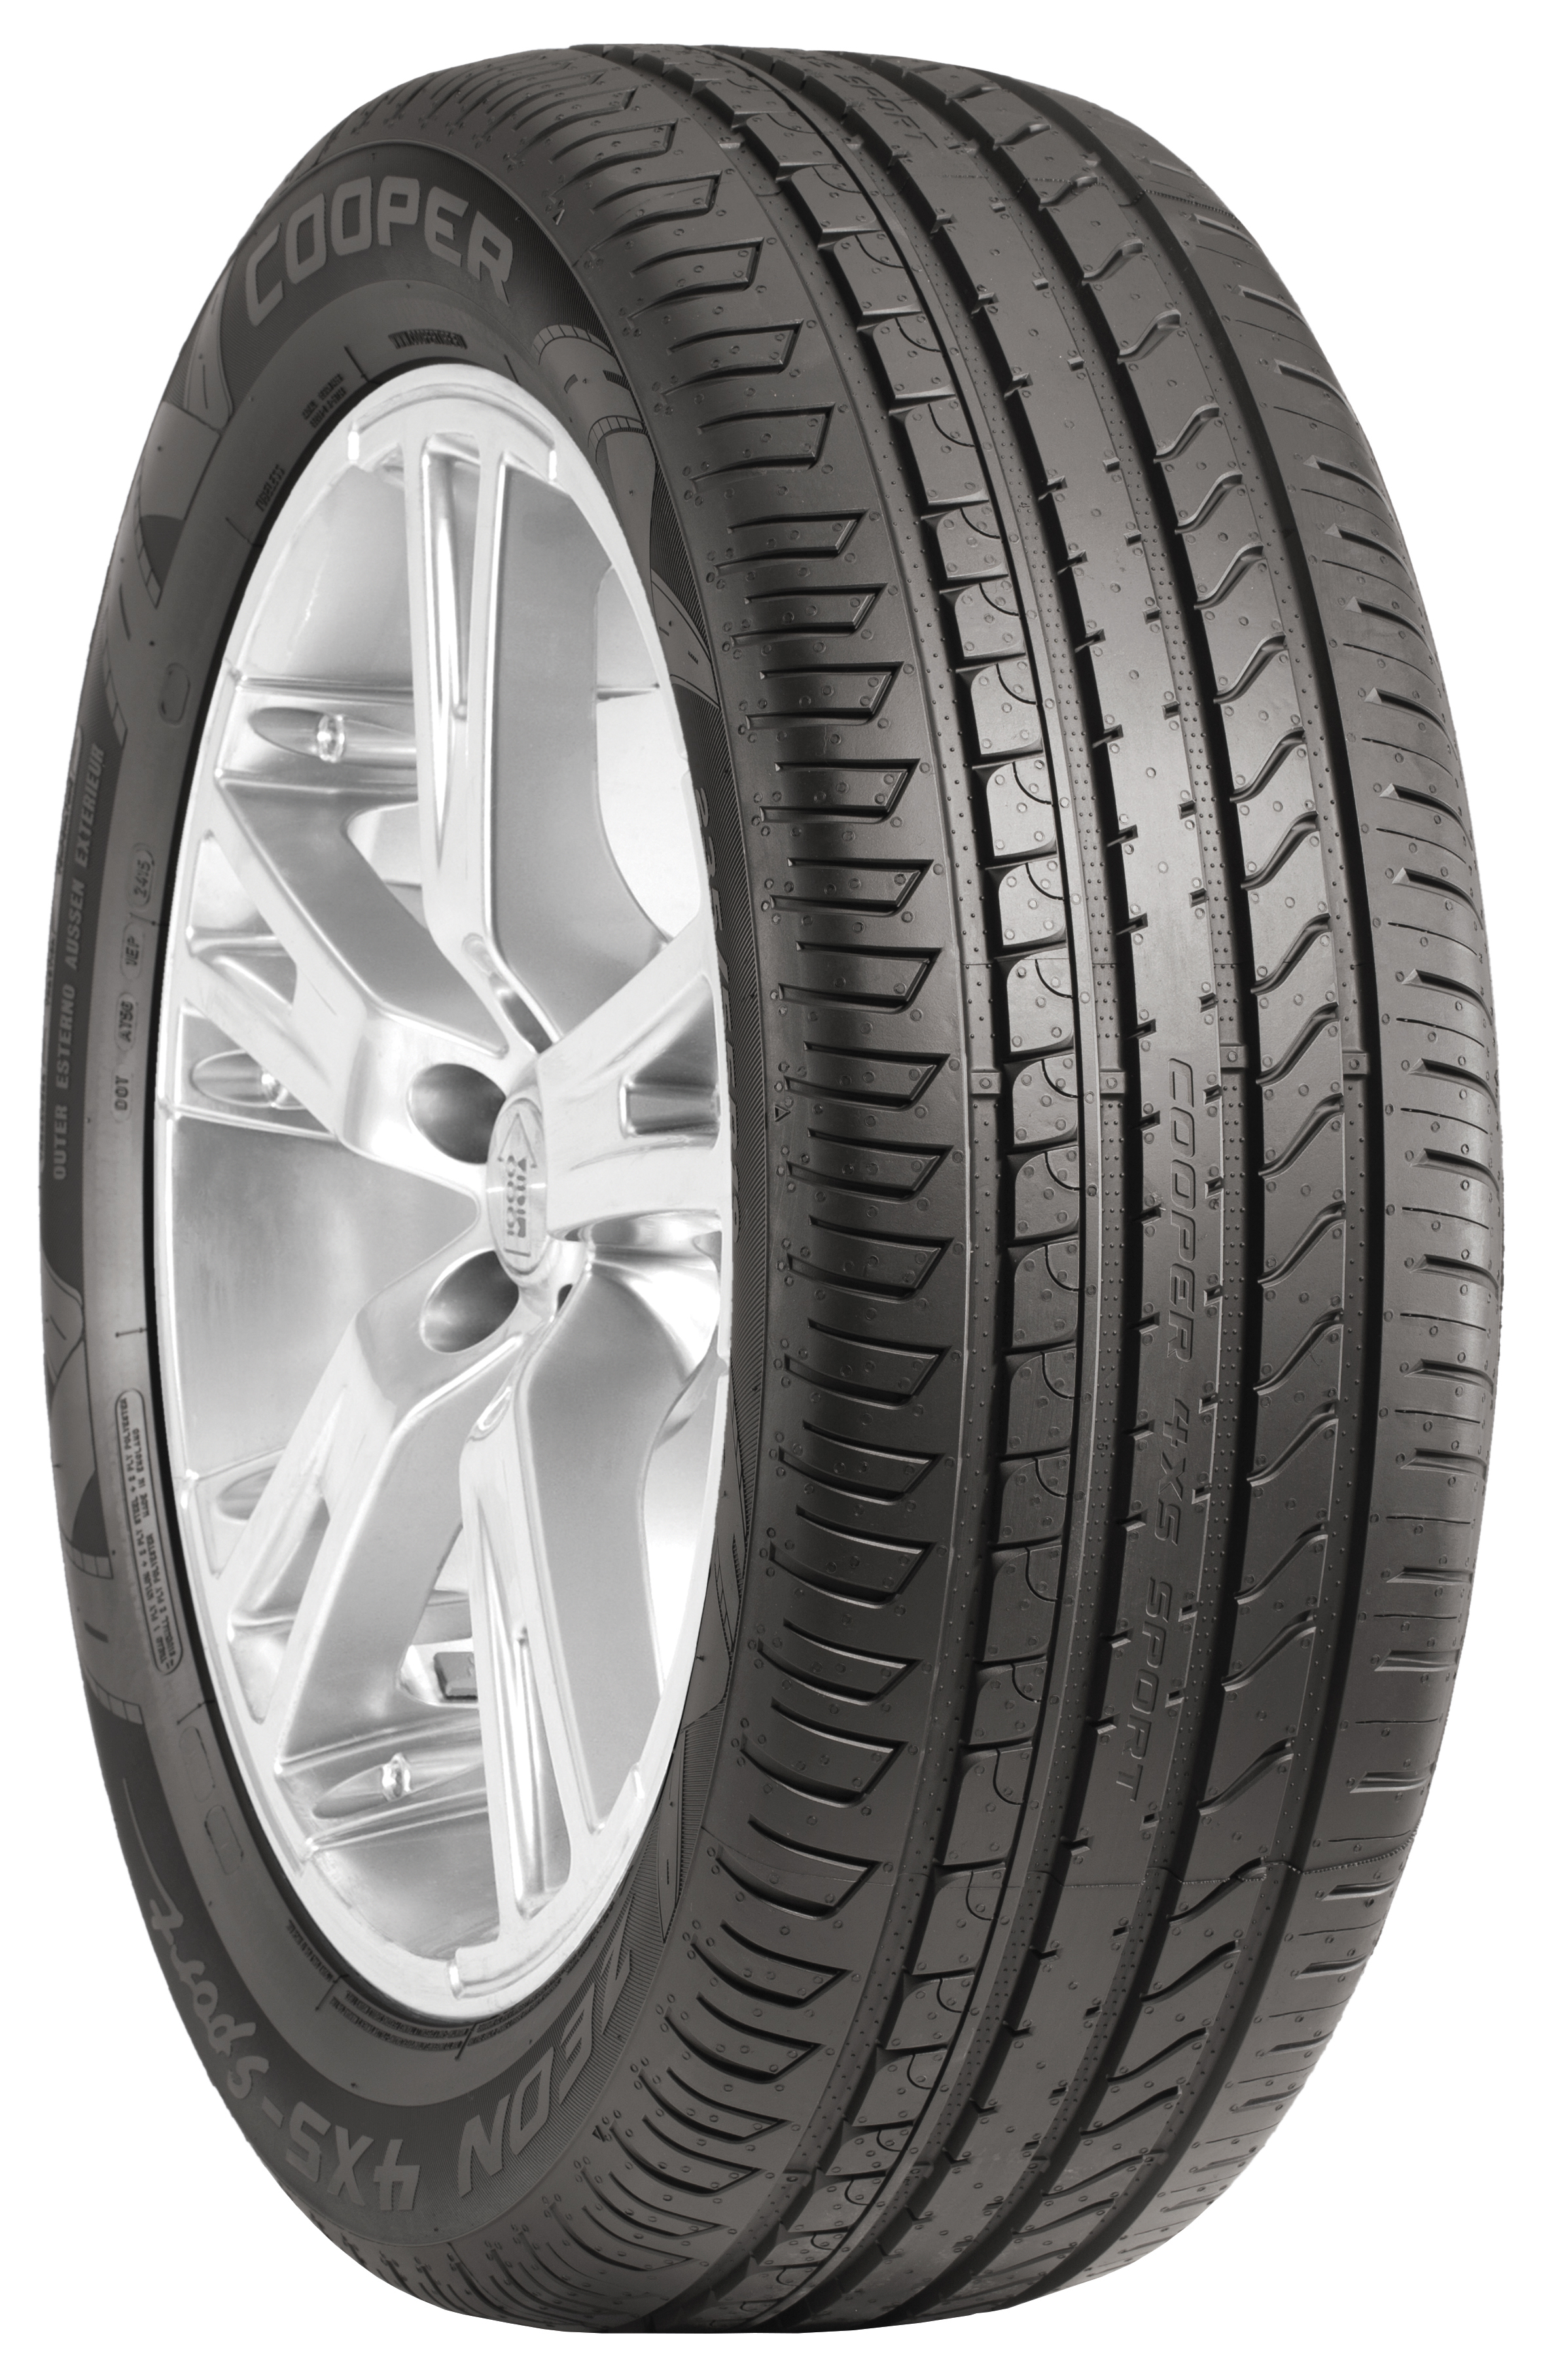 Gomme 4x4 Suv Cooper Tyres 225/65 R17 102H ZEON 4XS SPORT Estivo